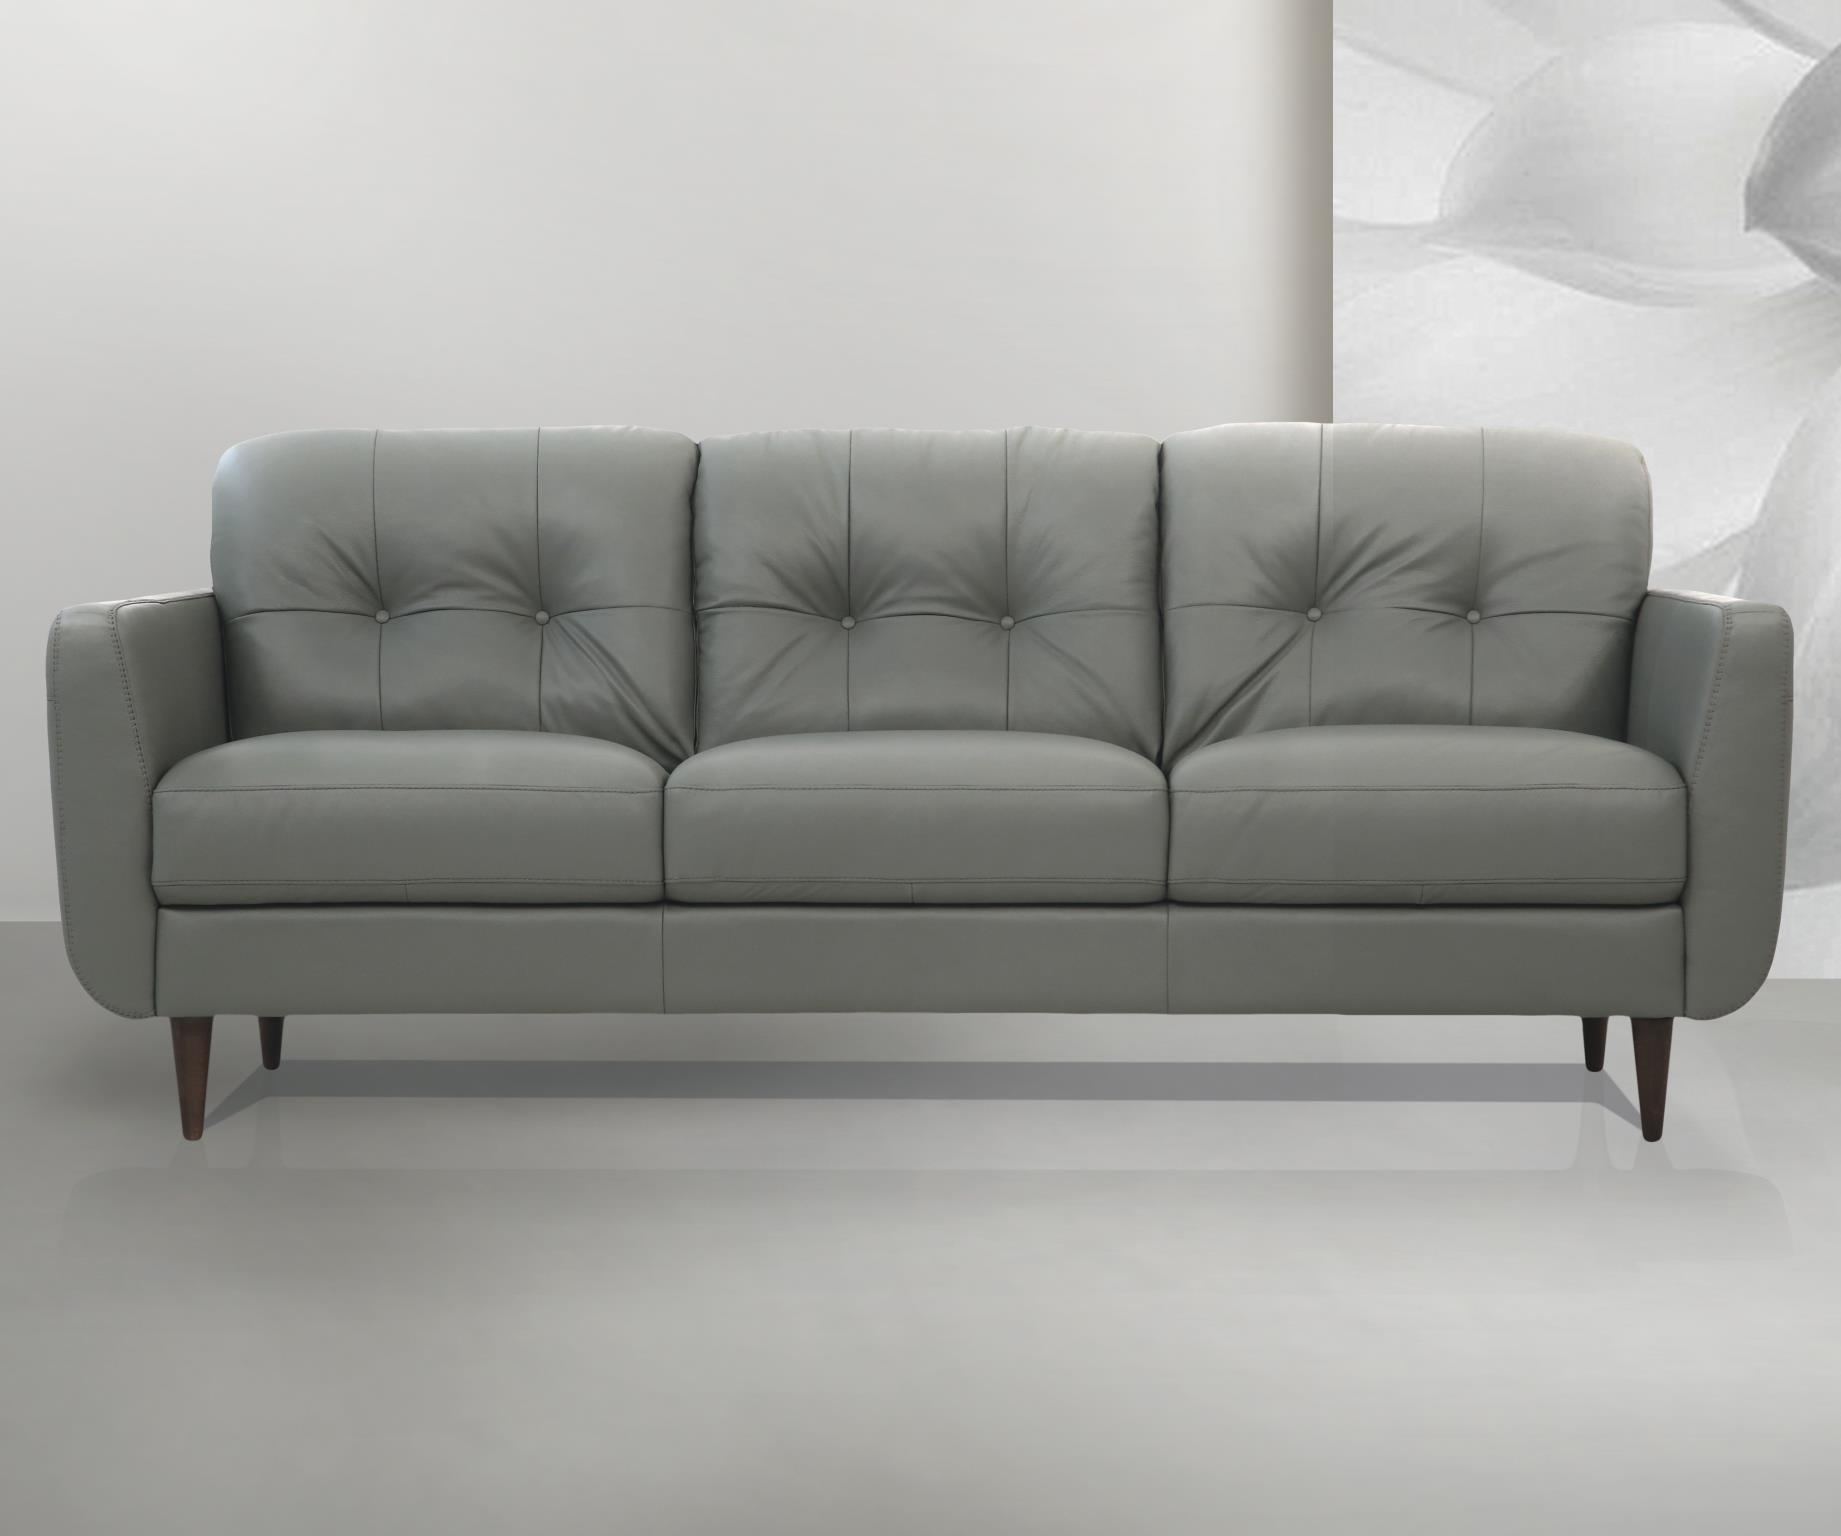 Pesto Green Complete Sofa Set